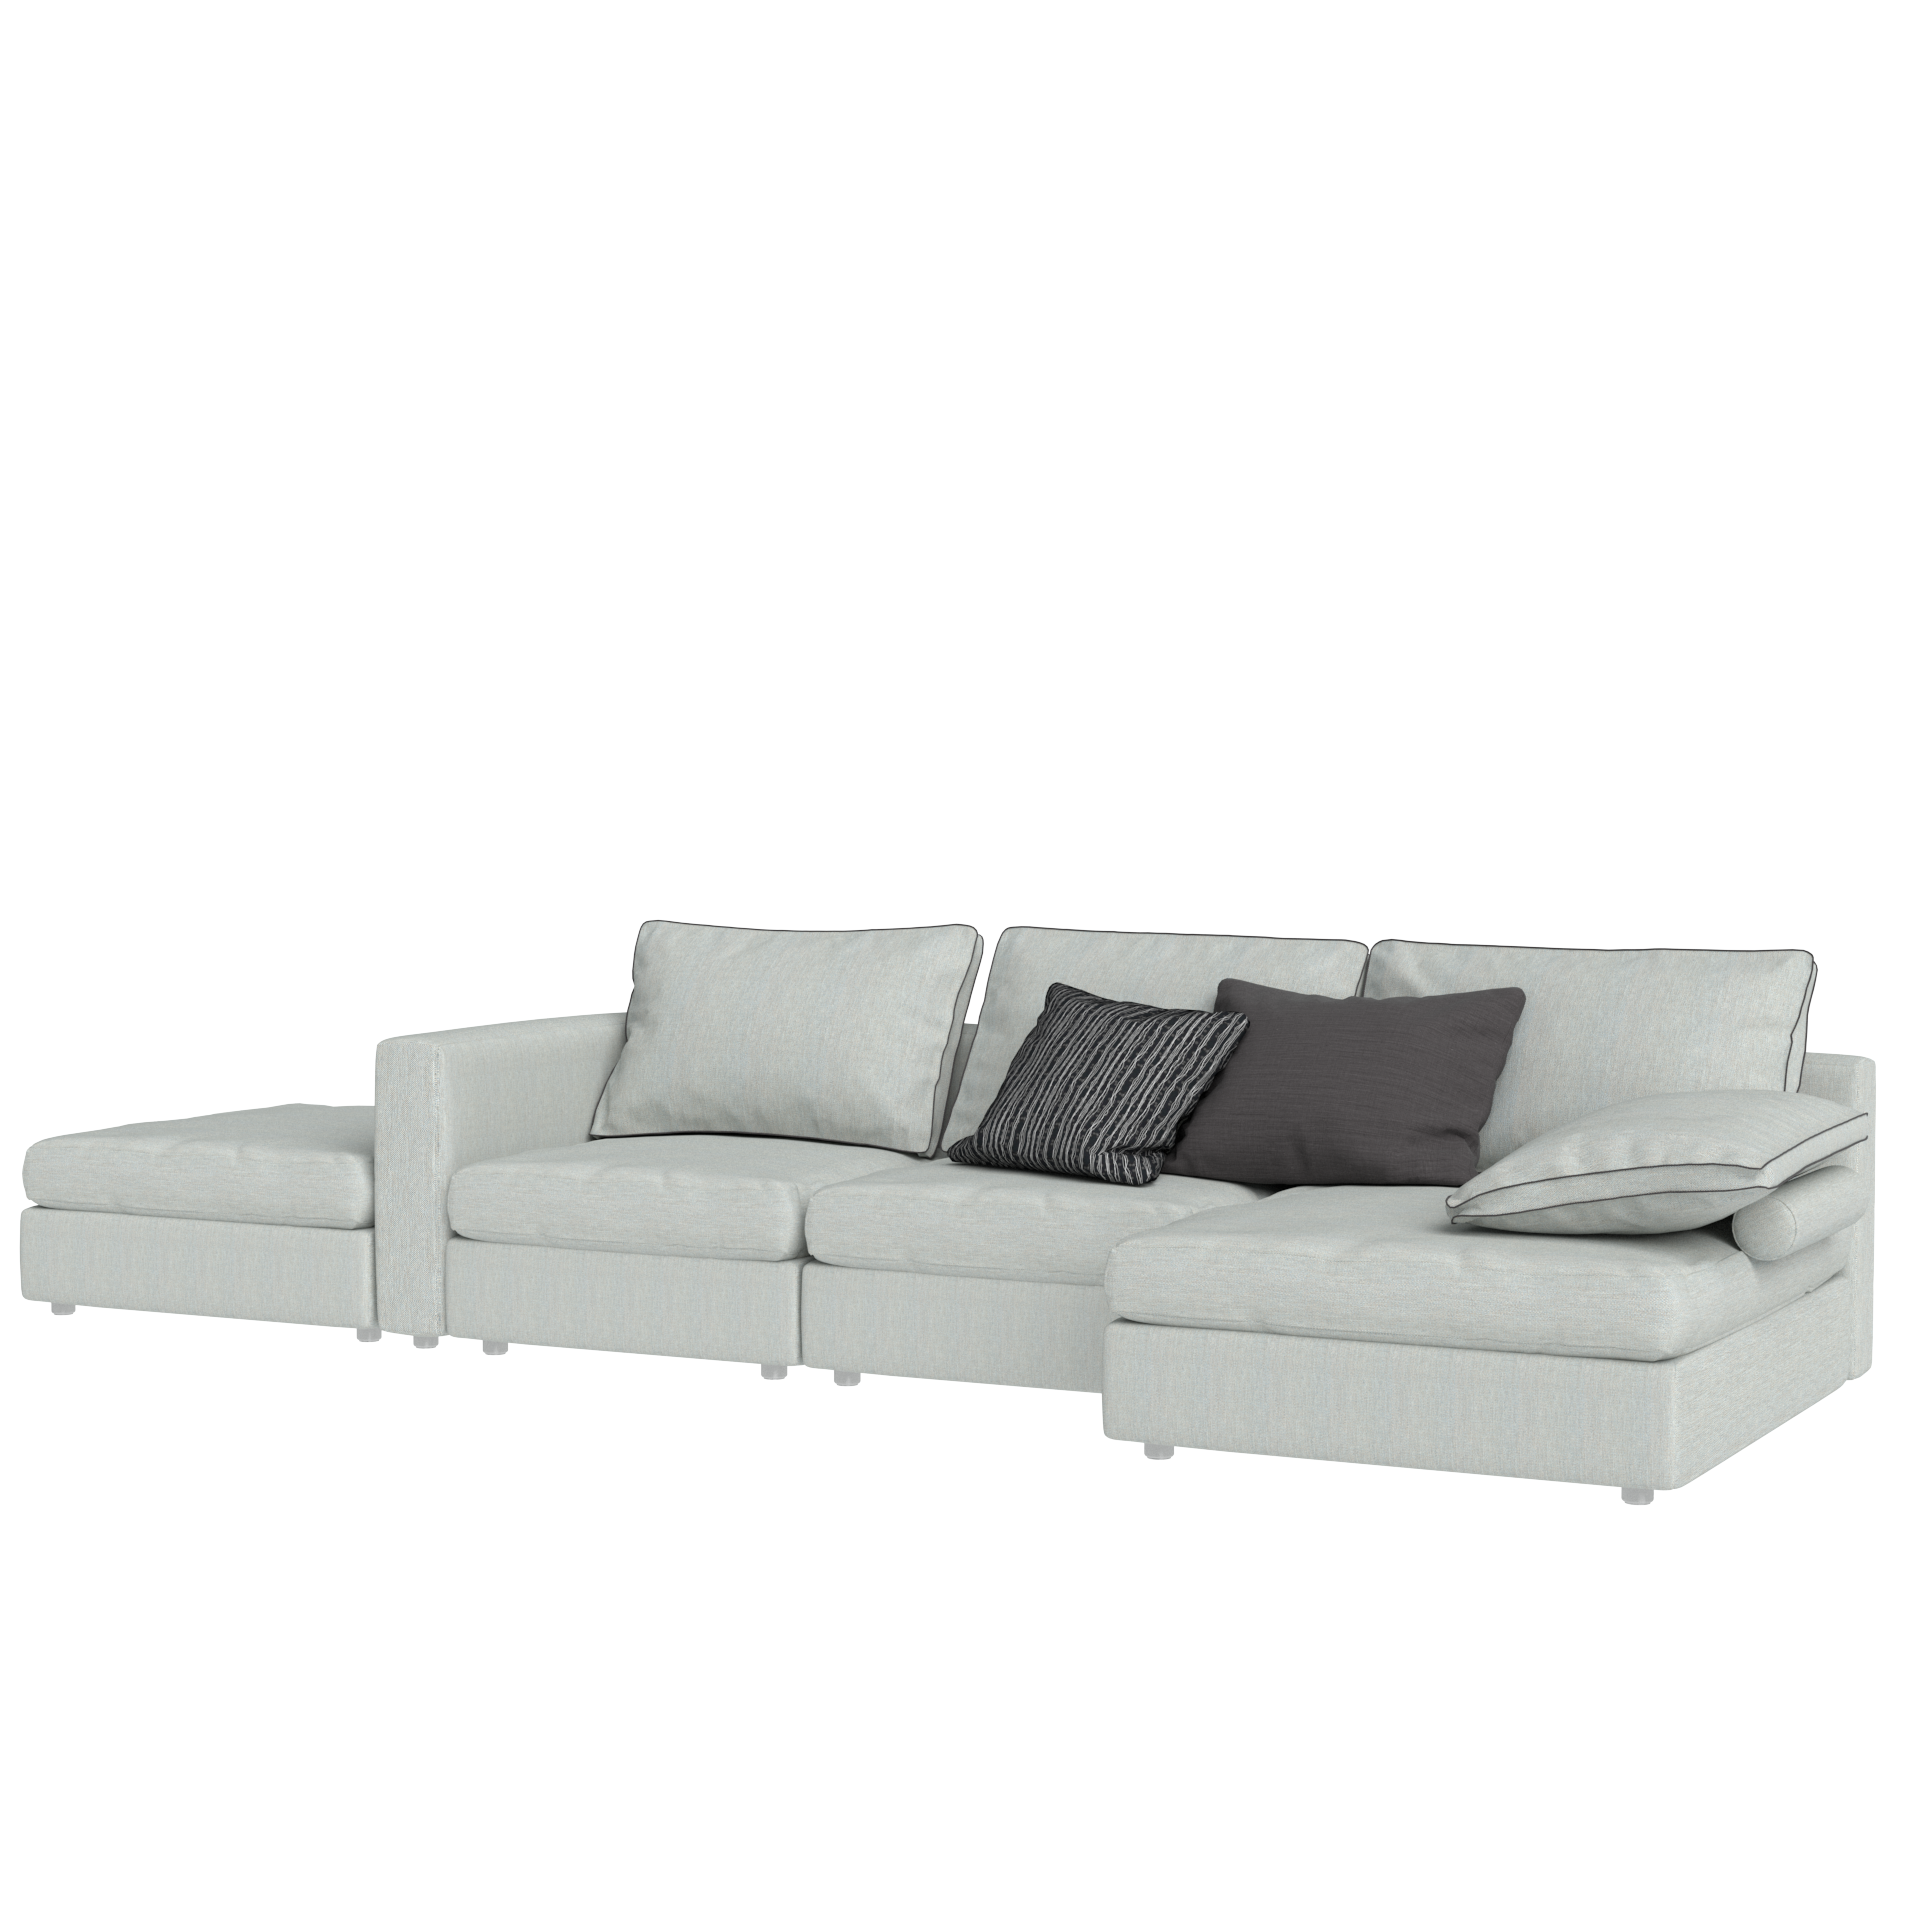 Sofa AI 04 Preview.png